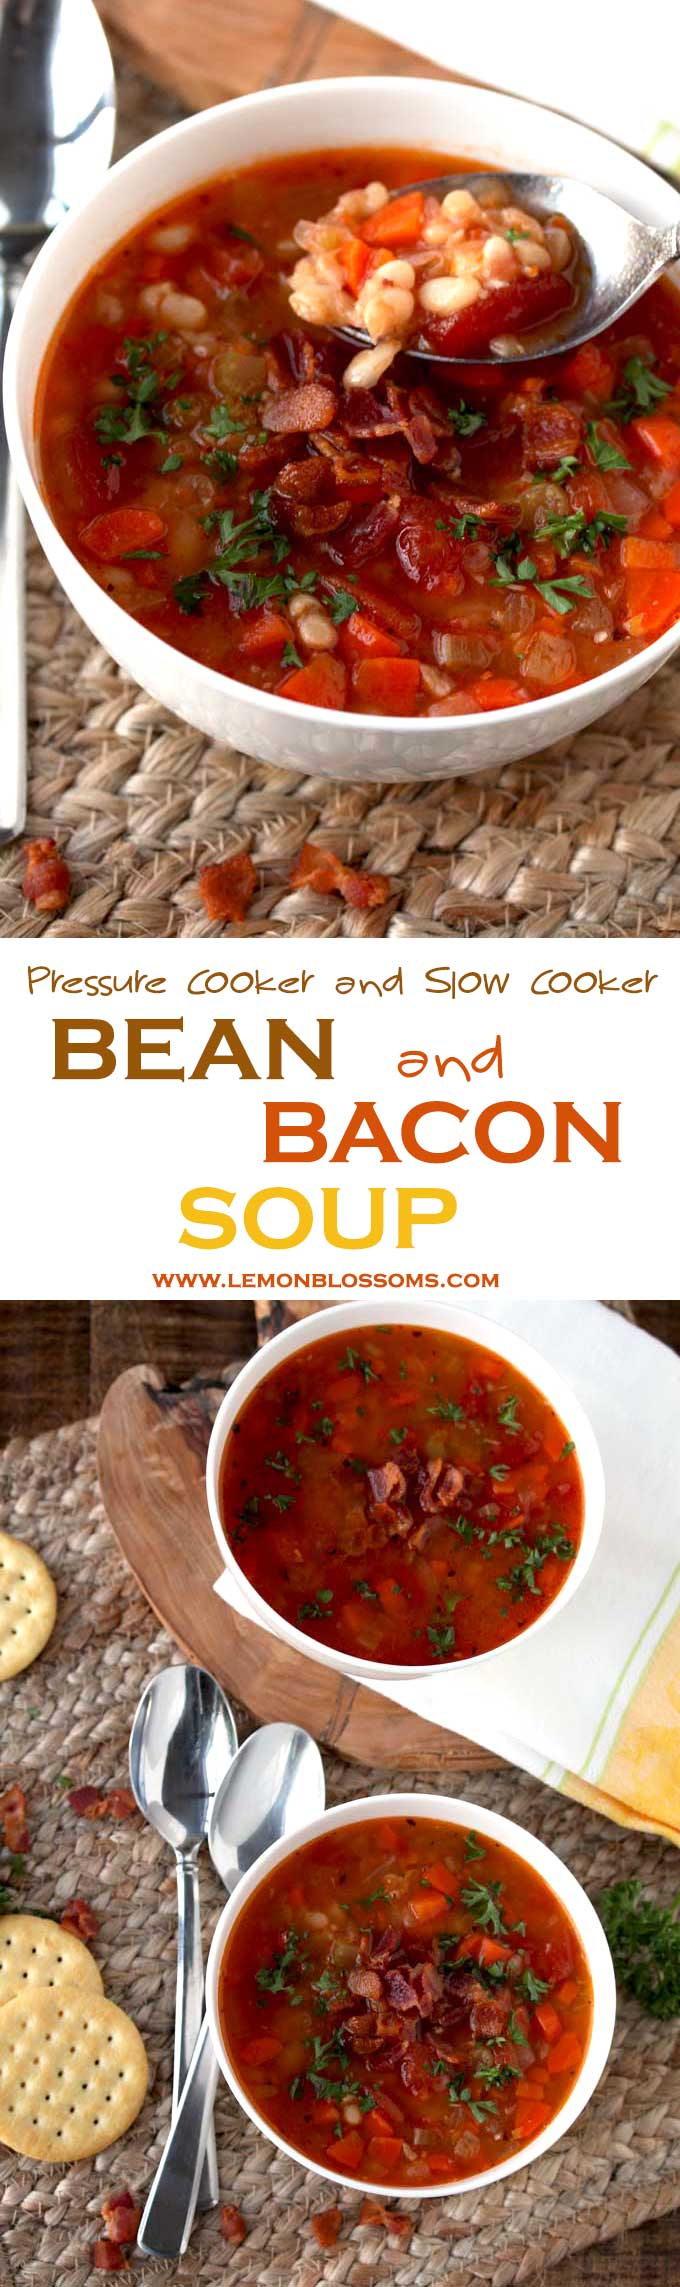 This Bean and Bacon Soup is light and incredibly tasty. Made with diced tomatoes, carrots, celery, onions and bacon. This is a broth-y type soup. If you want to stay away from heavy and creamy soups for a while, this one is for you!! Pressure Cooker and Slow Cooker instructions provided! #soup #bean #bacon #instantpot #slowcooker #crockpot